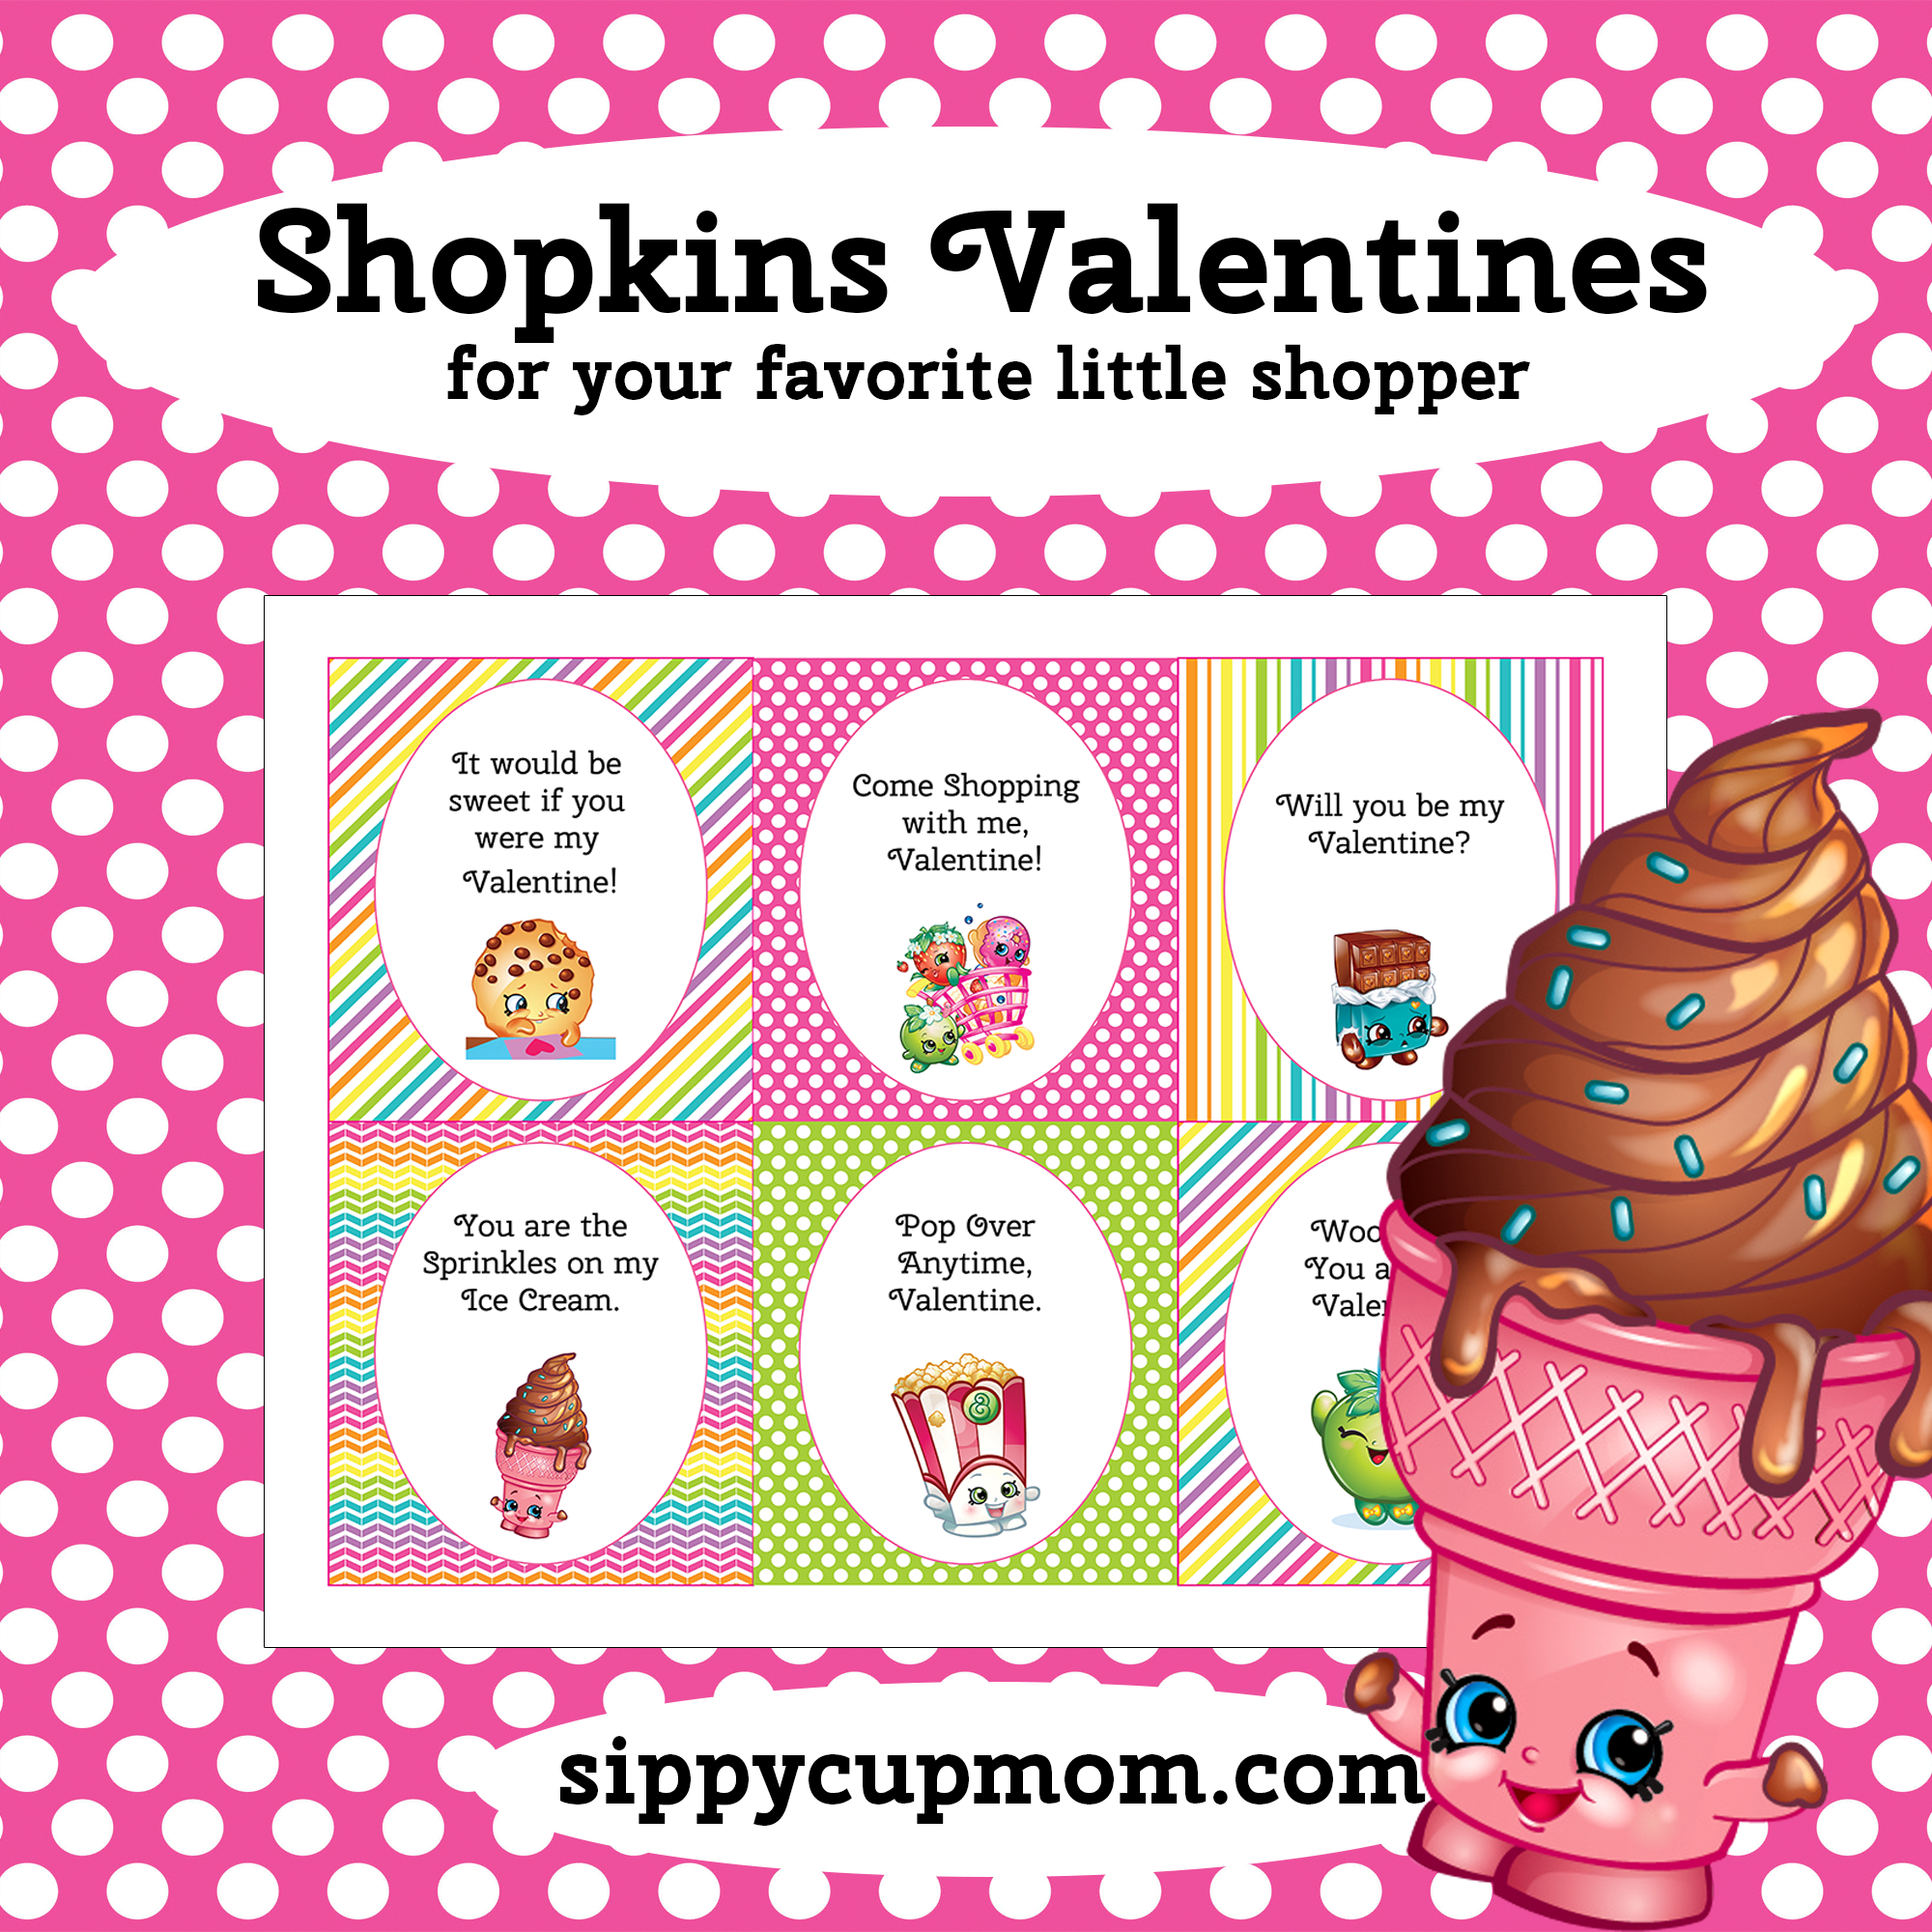 Free Printable Shopkins Valentine's Day Cards - Sippy Cup Mom - Free Printable Valentines Day Cards For My Daughter